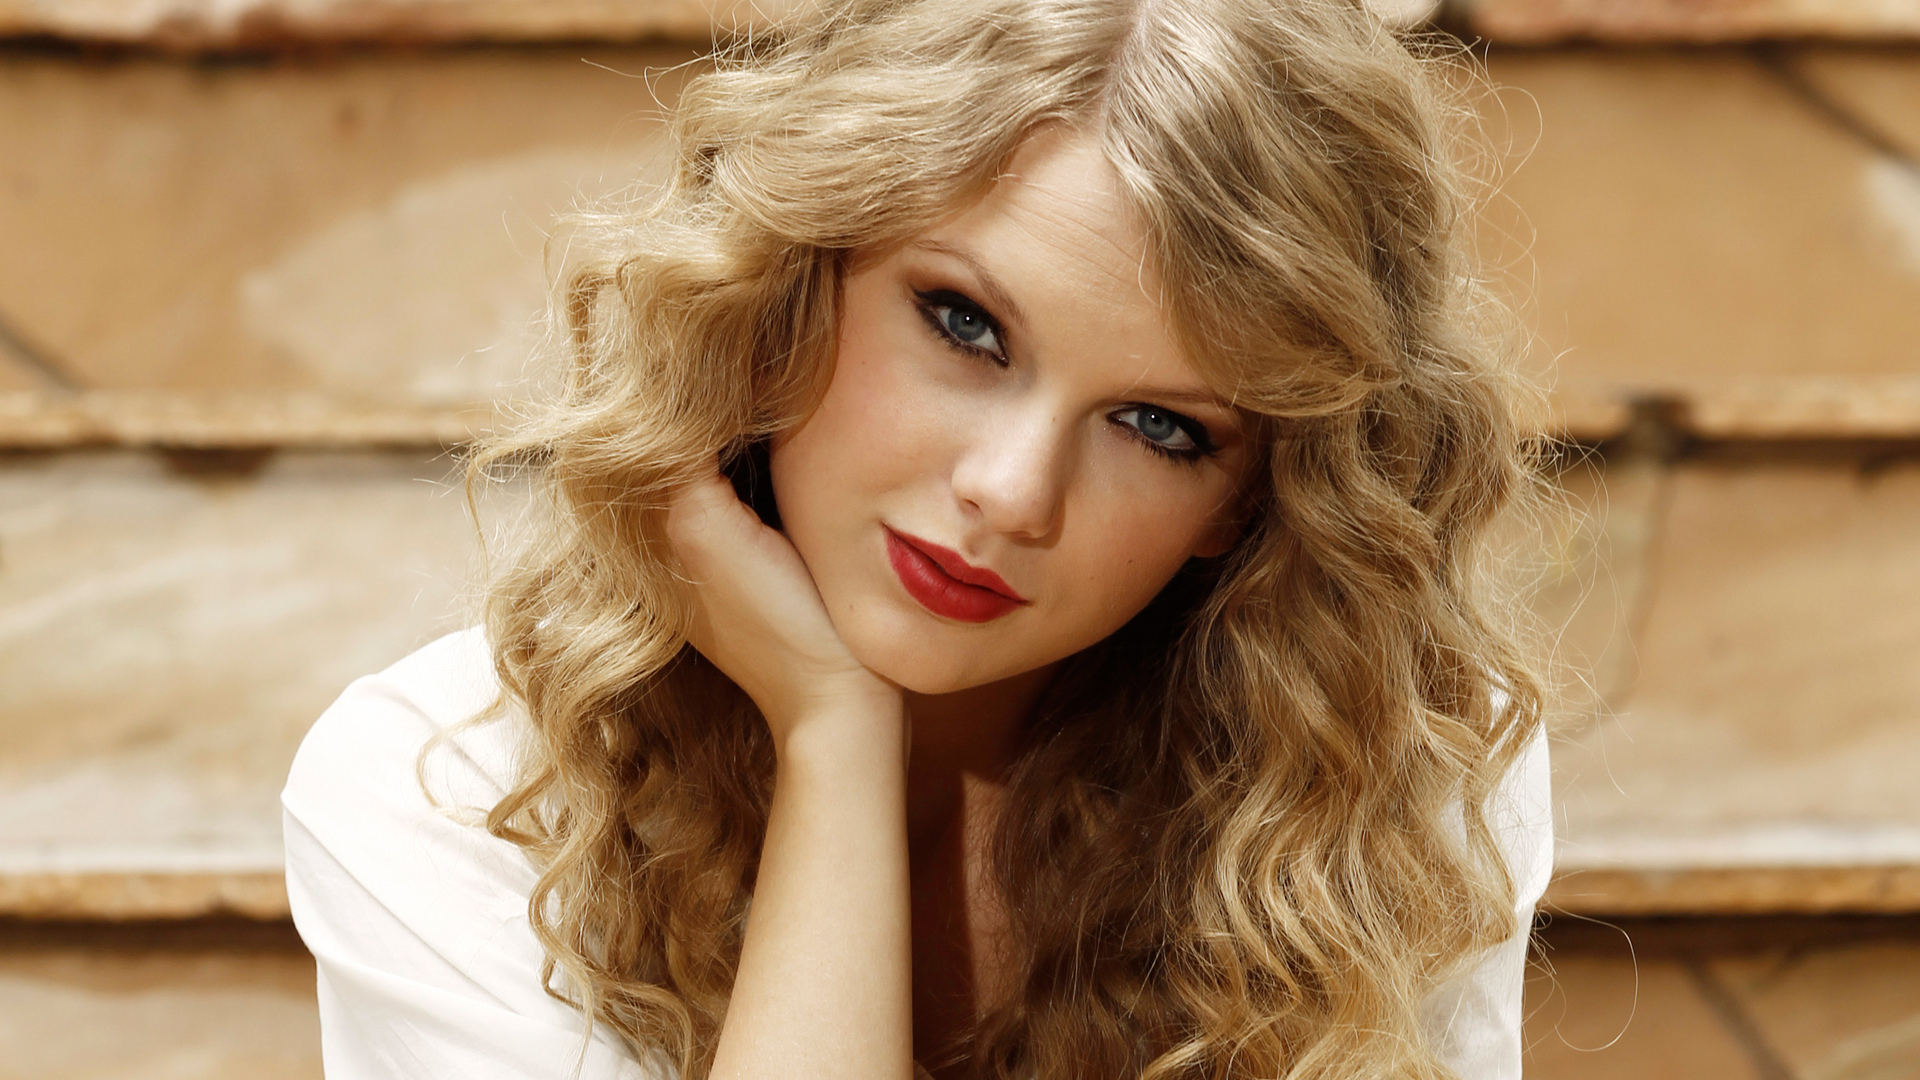 Taylor Swift Wallpapers Pictures Images 1920x1080